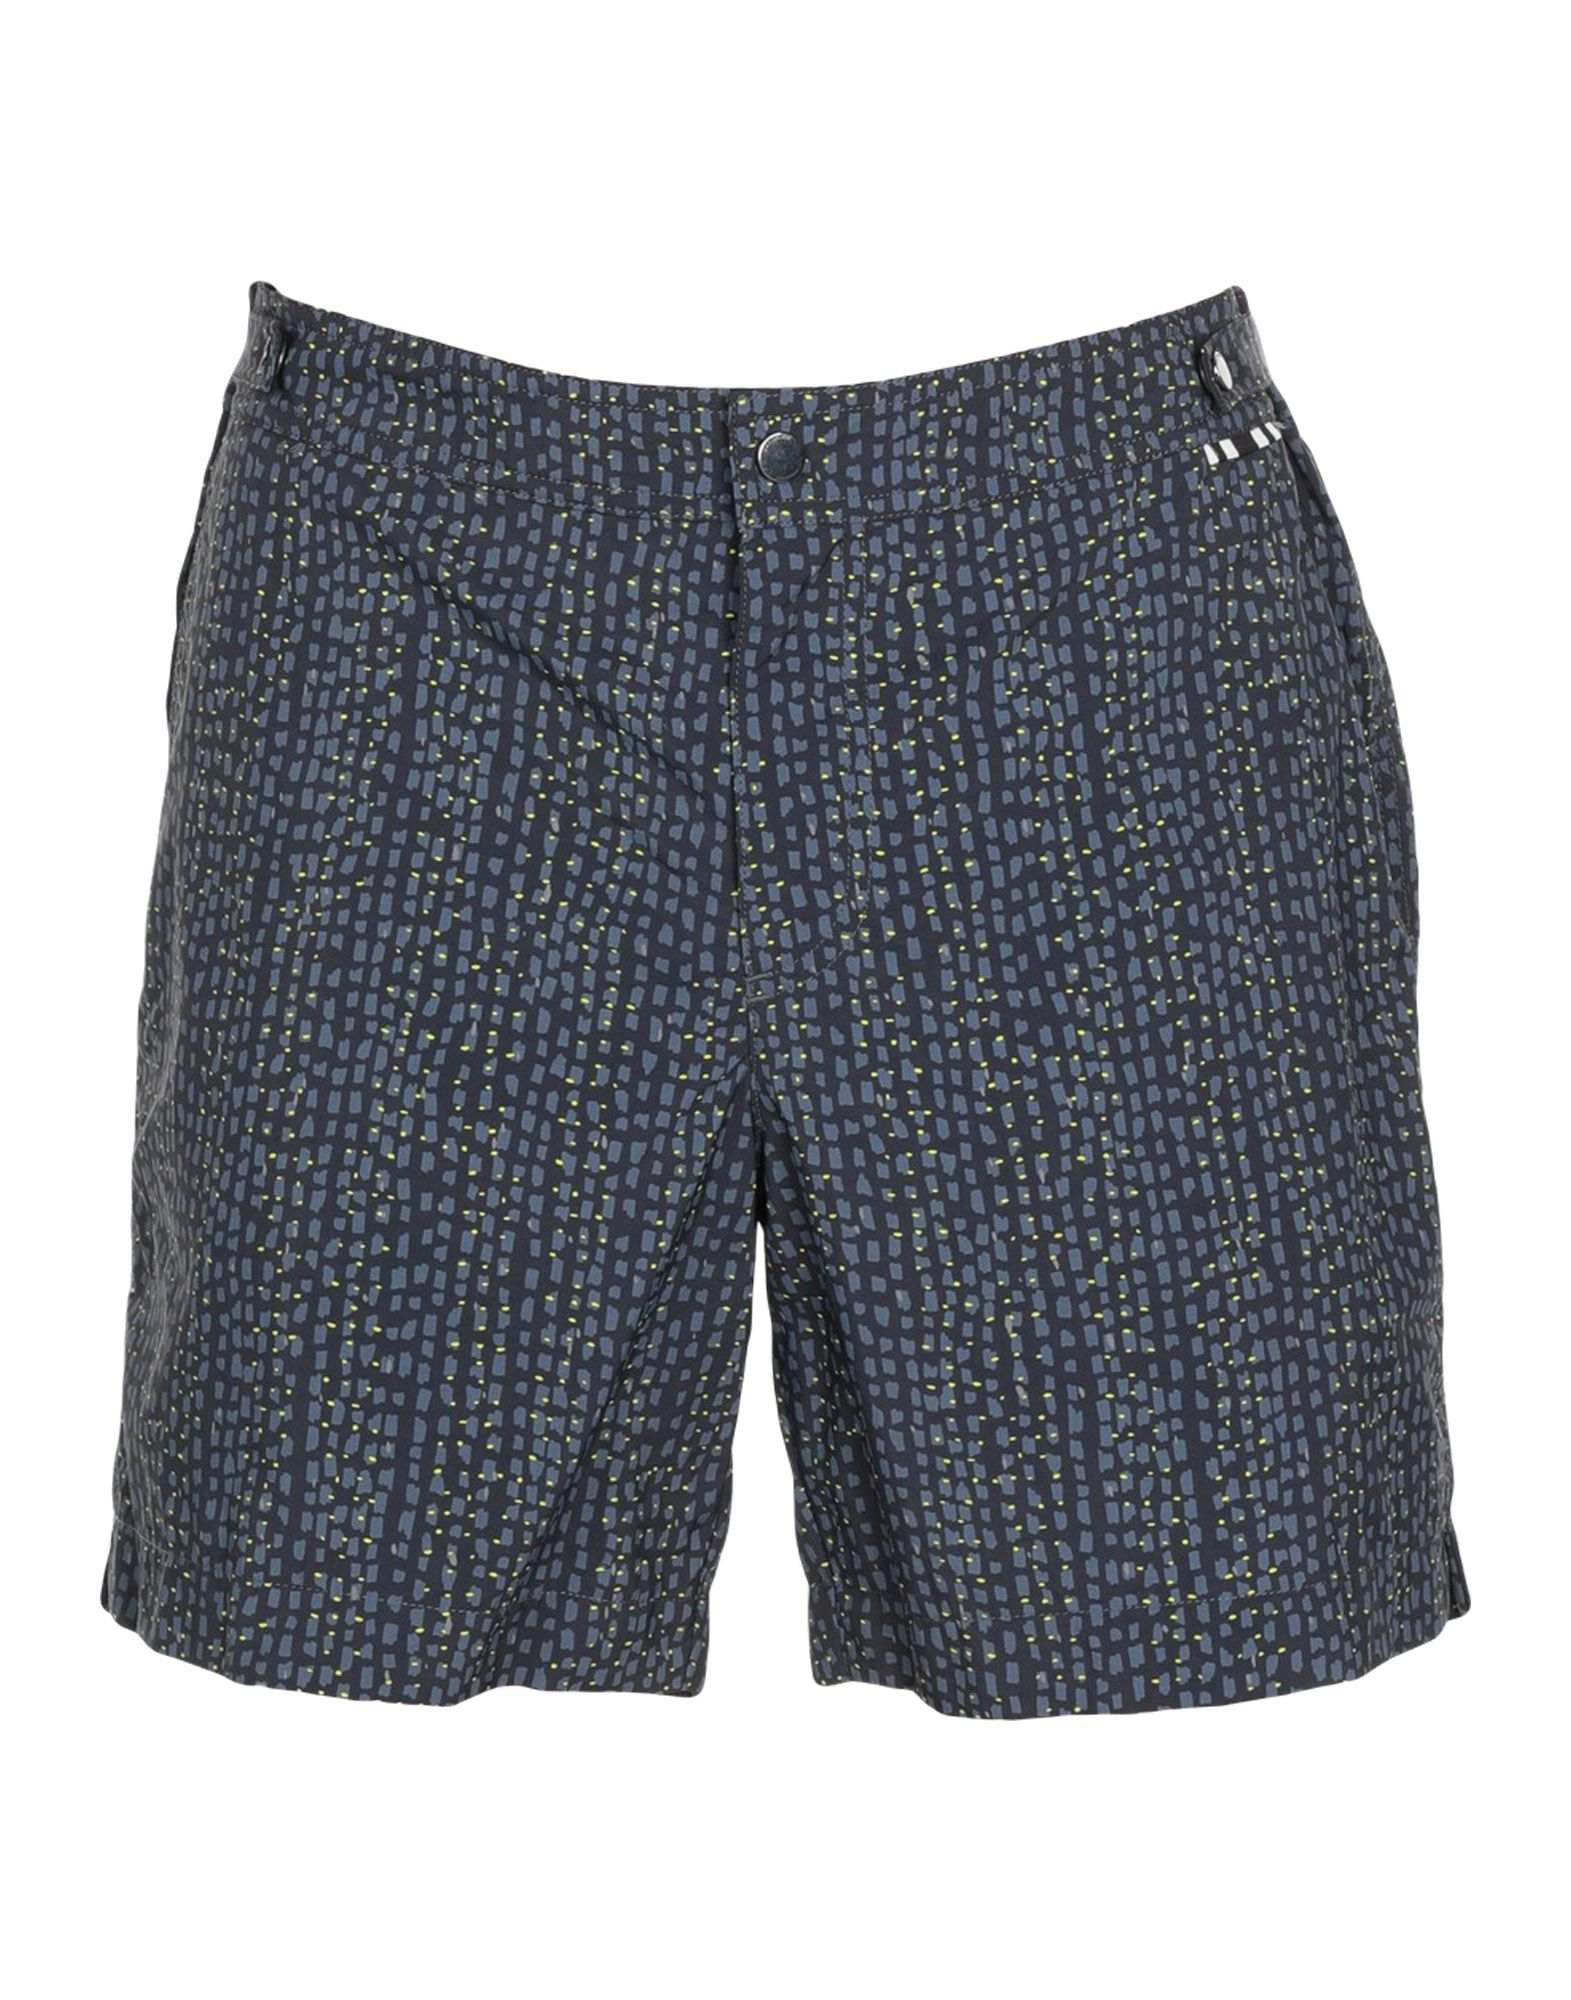 DANWARD Swim Shorts in Lead